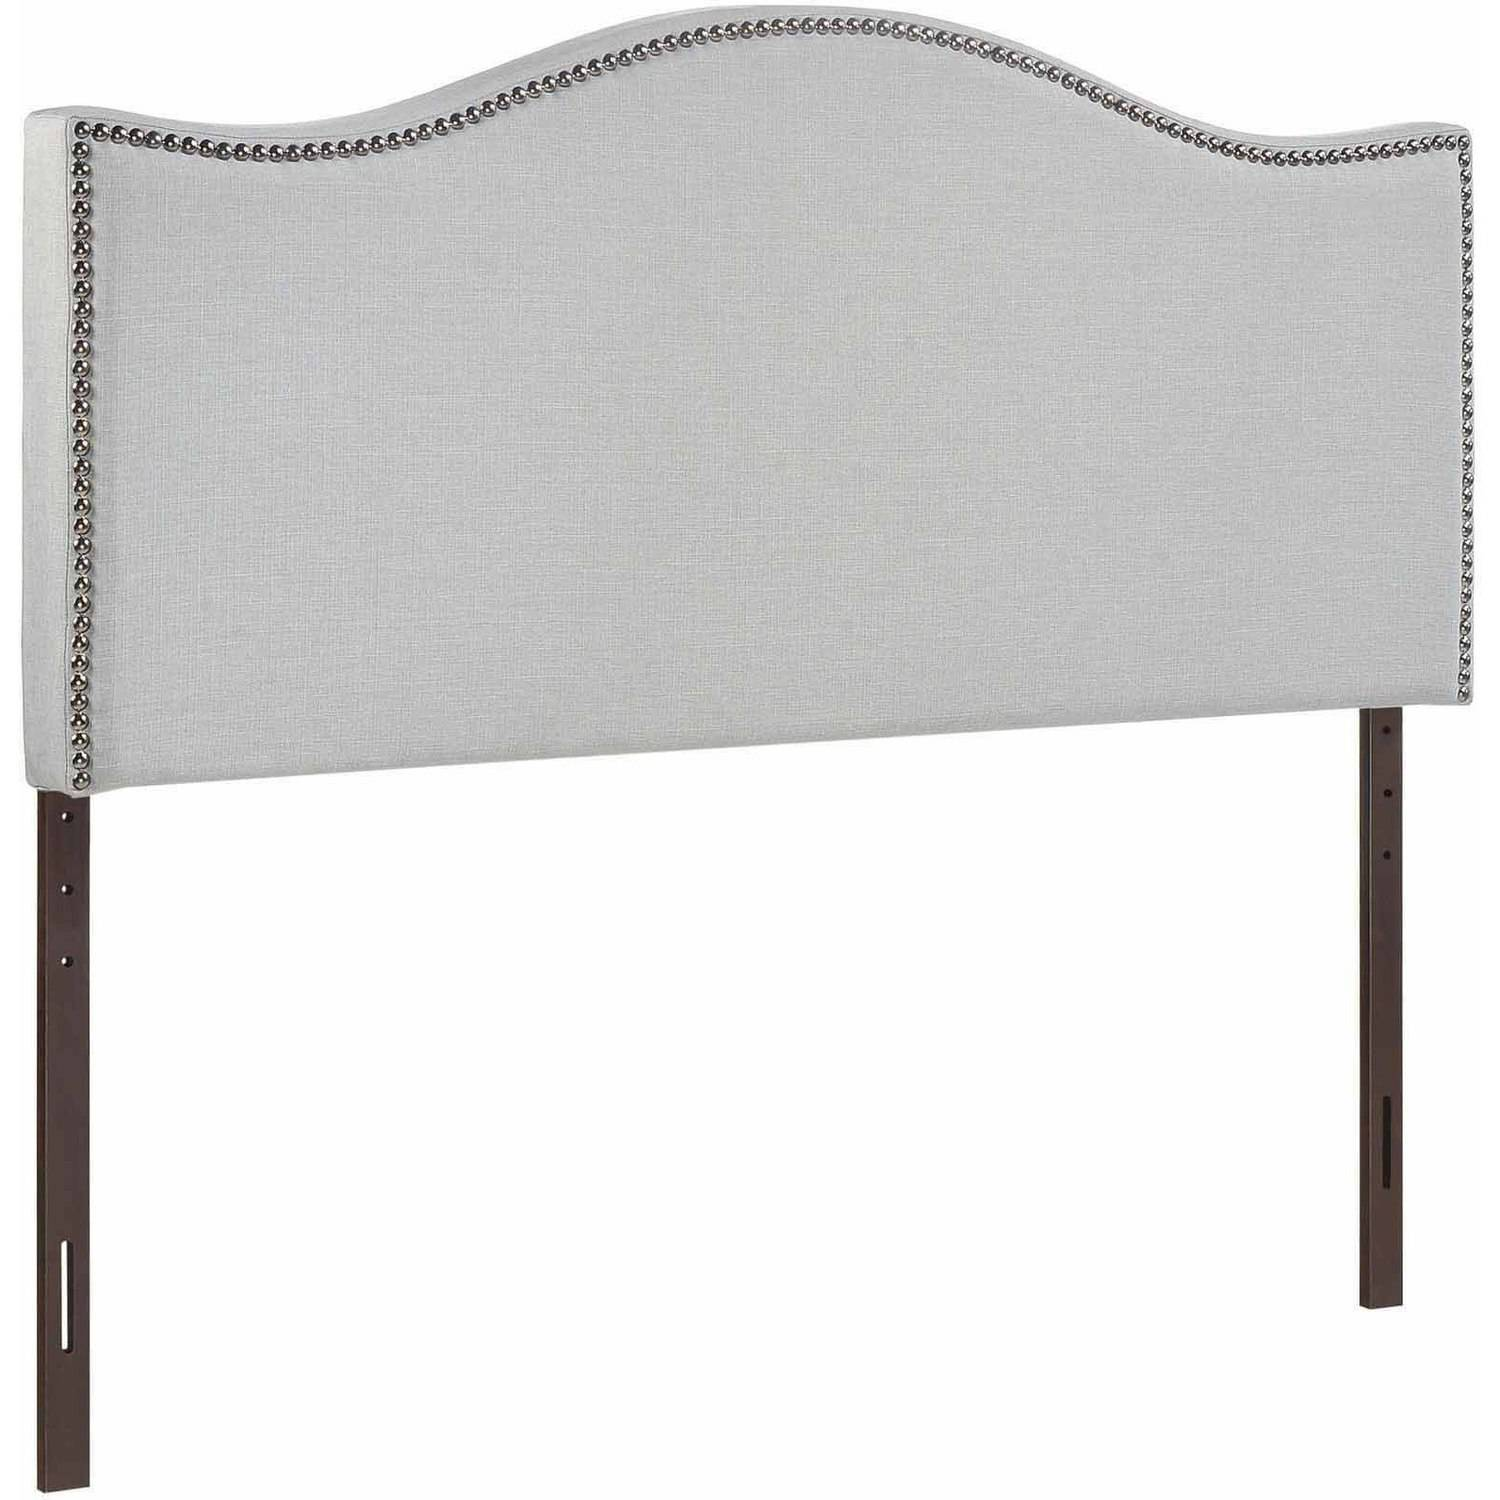 Modway Curl King Nailhead Upholstered Headboard, Multiple Colors -  Walmart.com - Modway Curl King Nailhead Upholstered Headboard, Multiple Colors